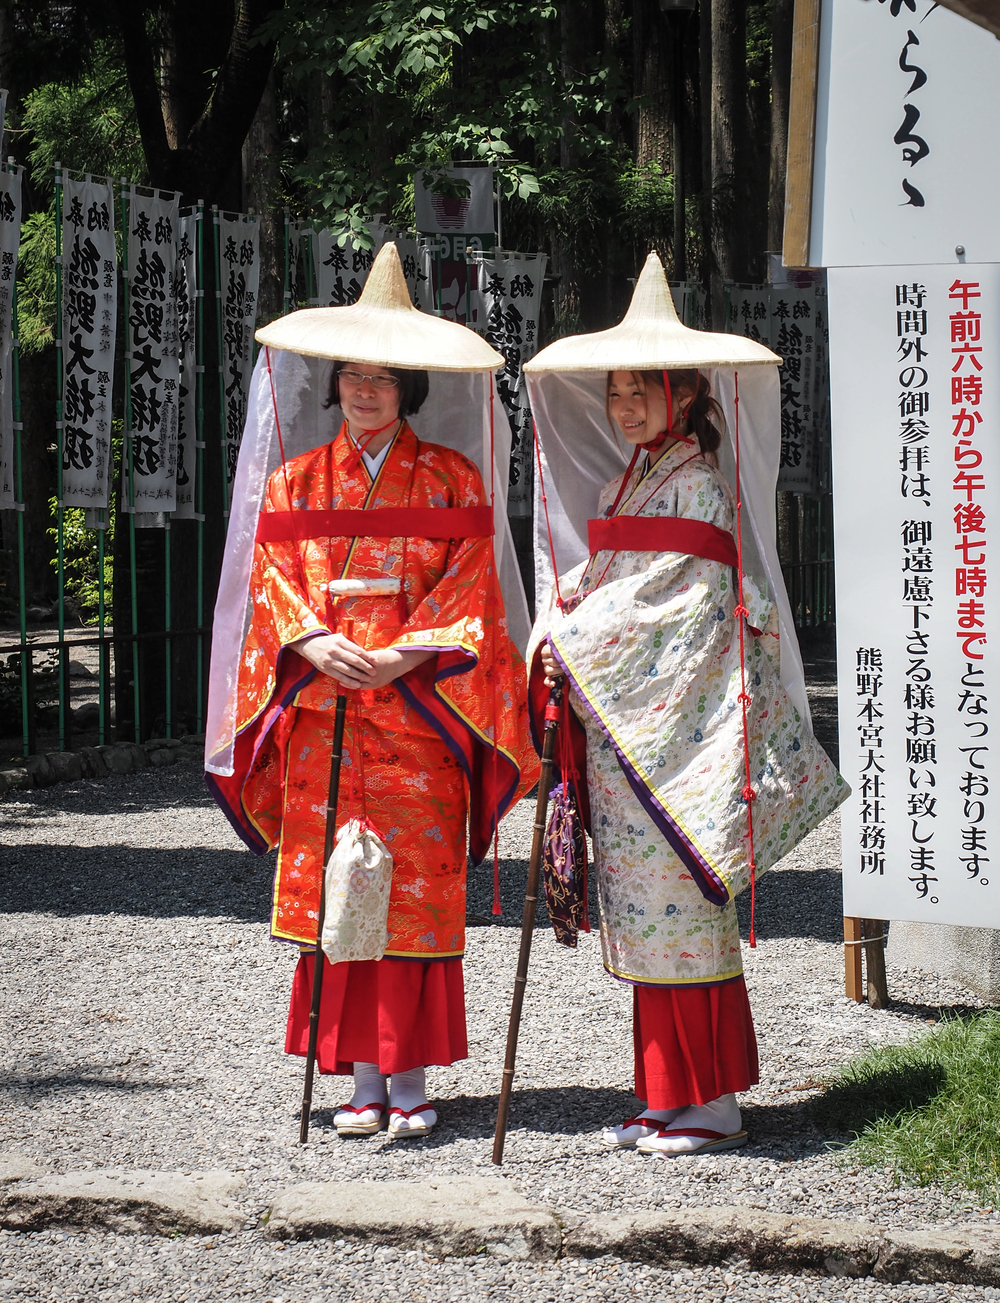 Women dressed in historic pilgrim attire